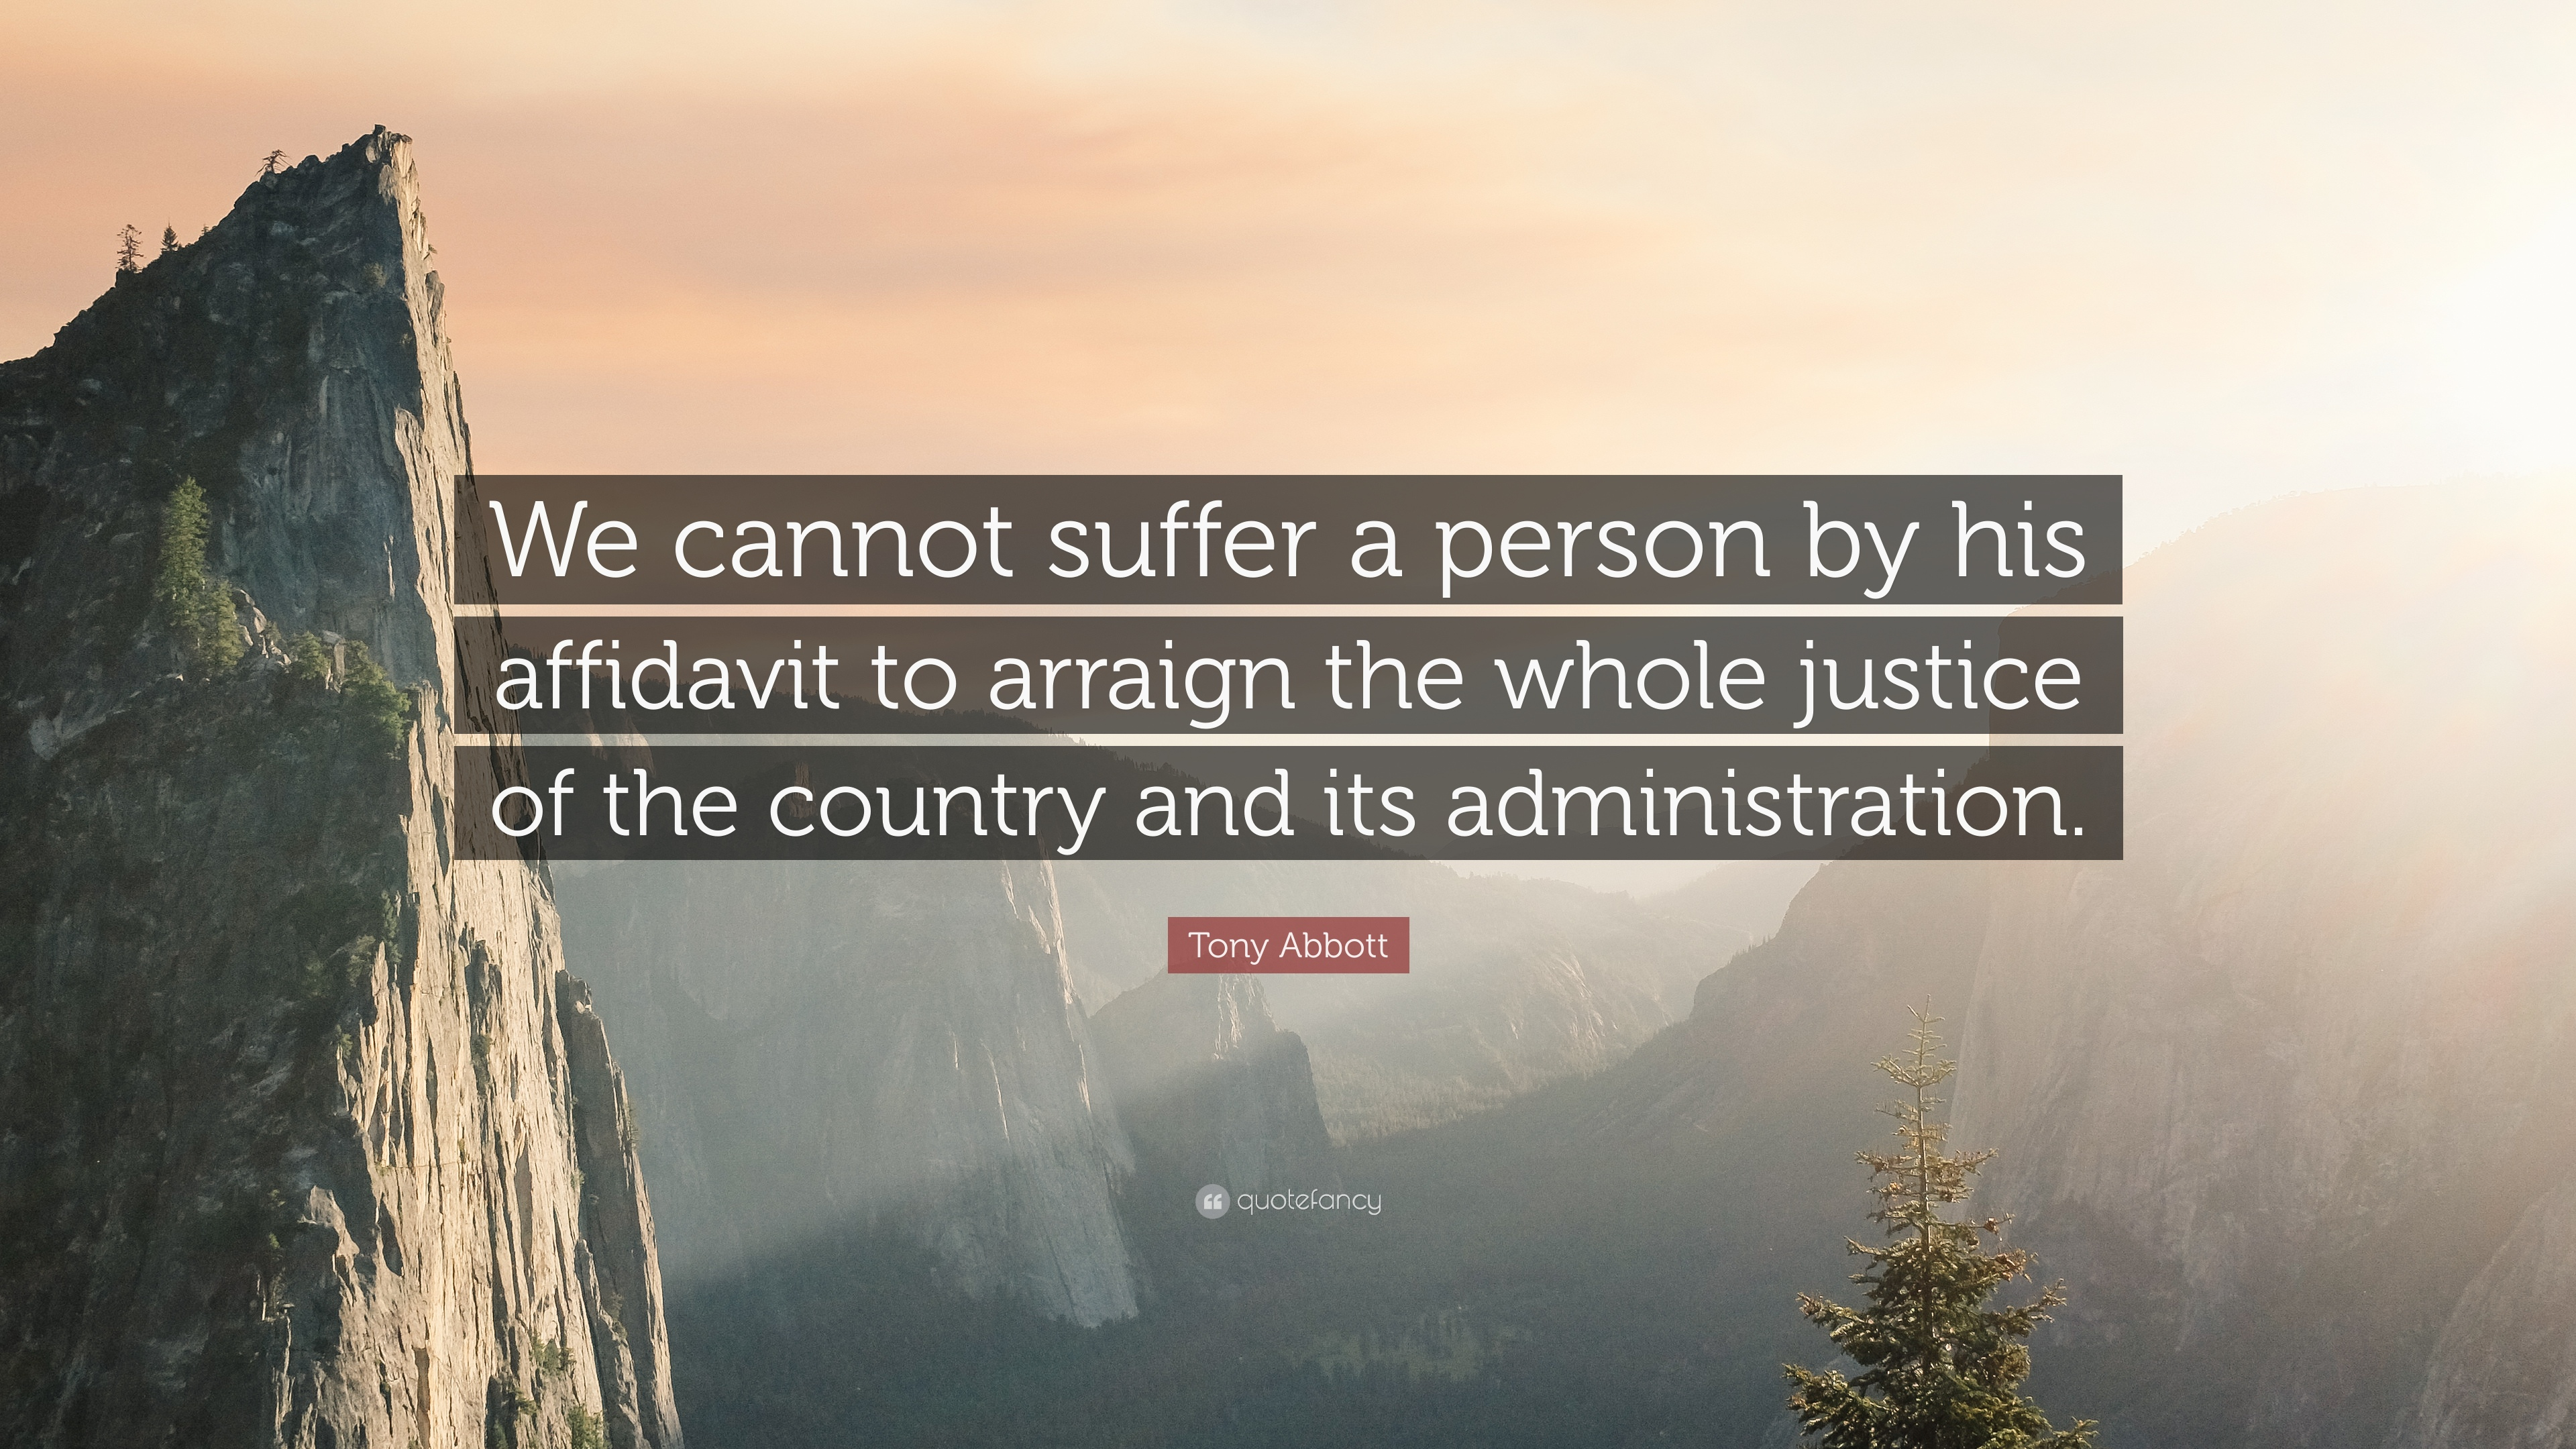 Tony abbott quote we cannot suffer a person by his affidavit to tony abbott quote we cannot suffer a person by his affidavit to arraign the thecheapjerseys Image collections